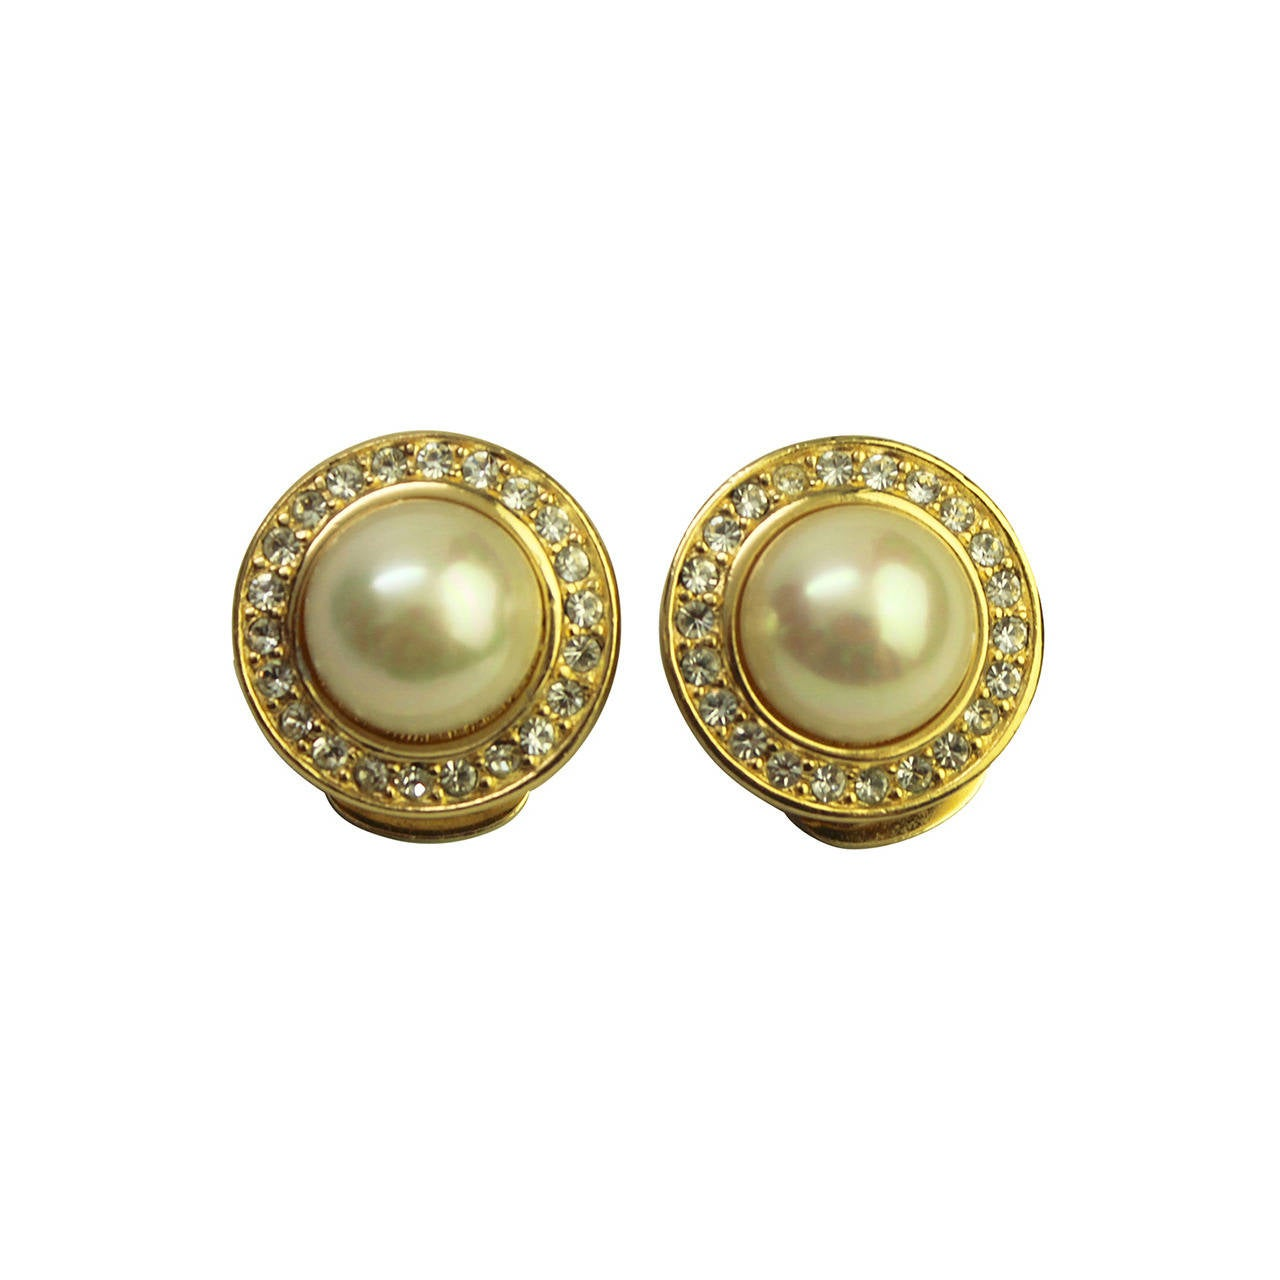 earrings for christian faux pearl and rhinestone earrings for sale 574